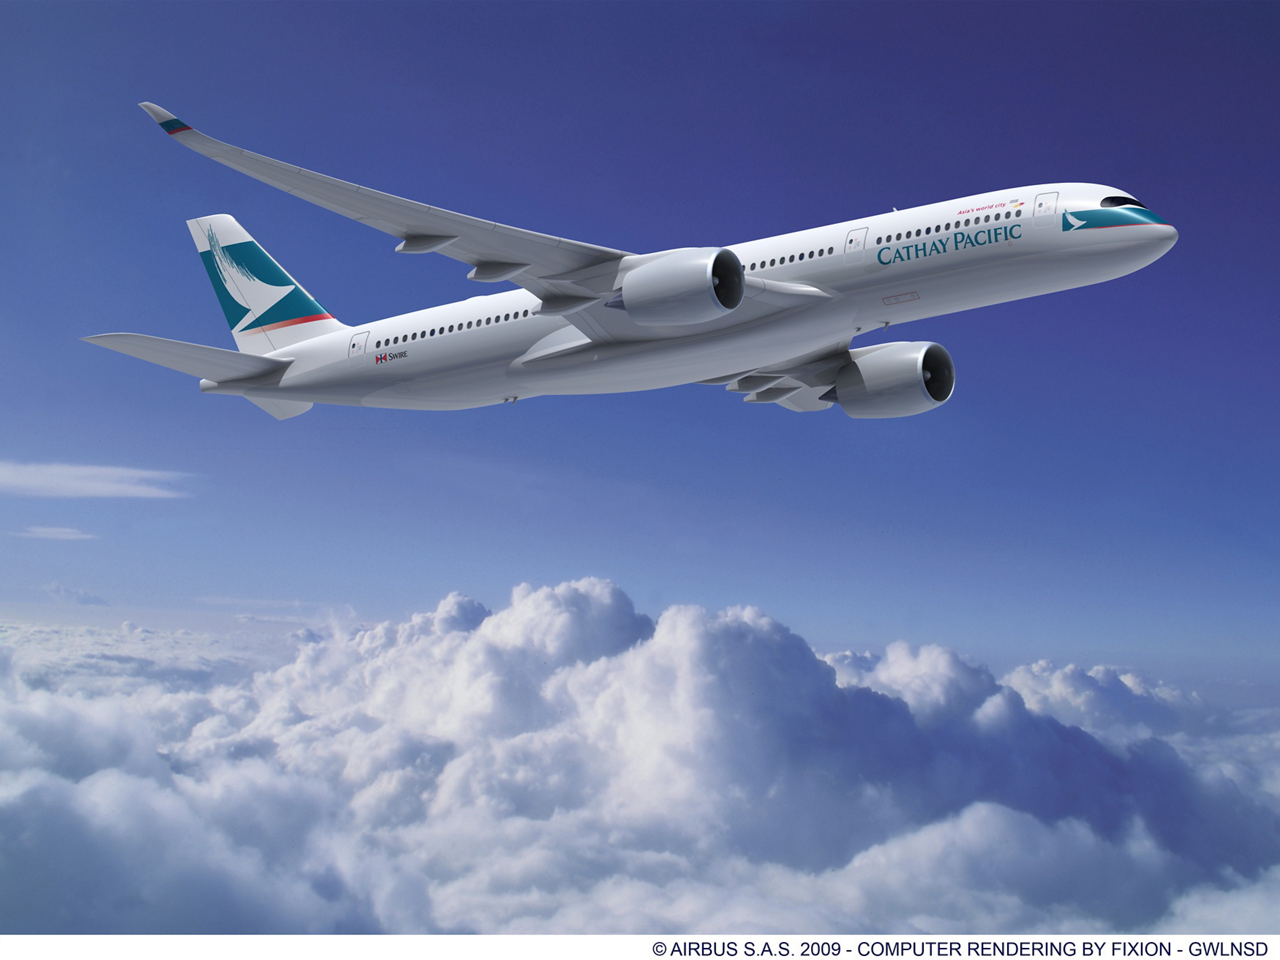 Cathay Pacific Airways announced today that it has selected the A350-900 to form the backbone of its future mid-size widebody fleet, following the signature of a Letter of Intent (LOI) with Airbus for the order of 30 aircraft. (4 August 2010)